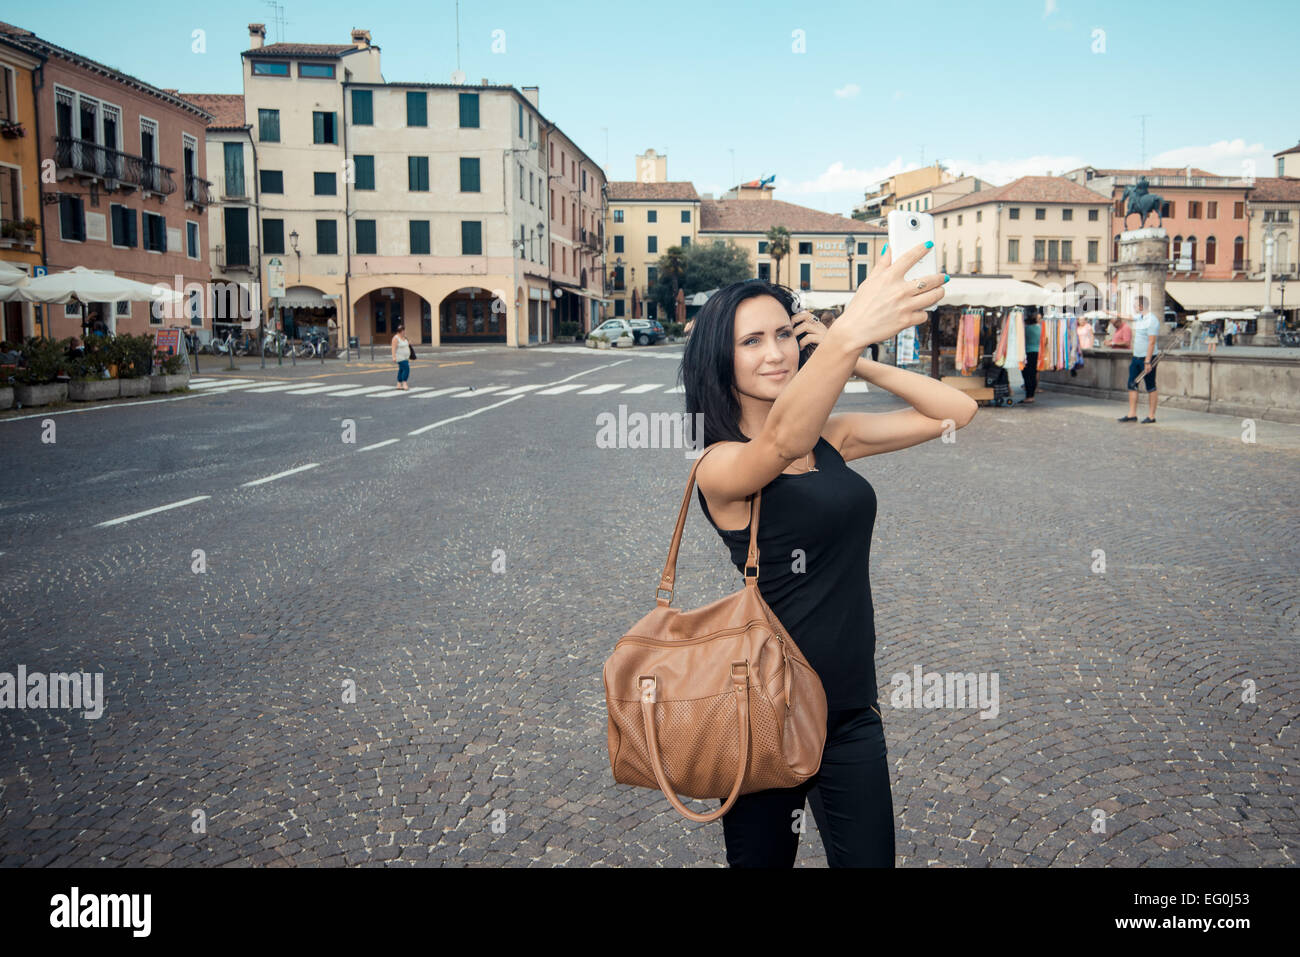 L'Italie, Padoue, young woman taking selfies Photo Stock